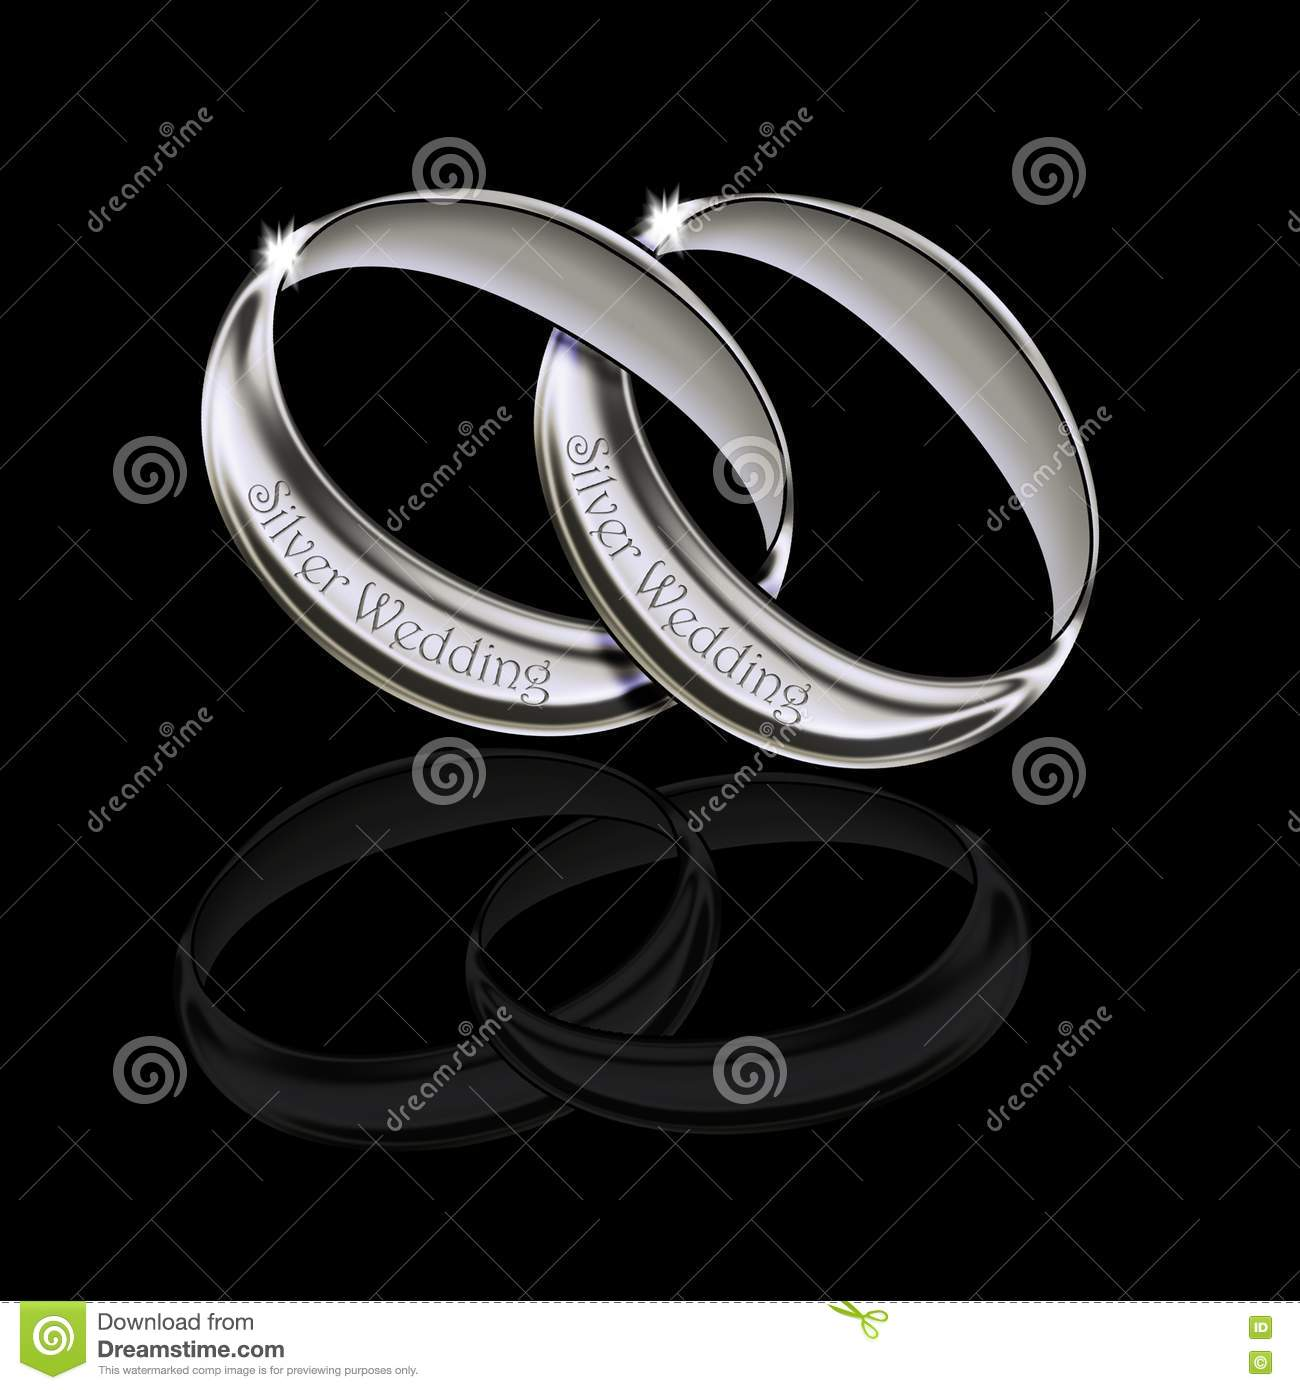 free photos of joined wedding rings